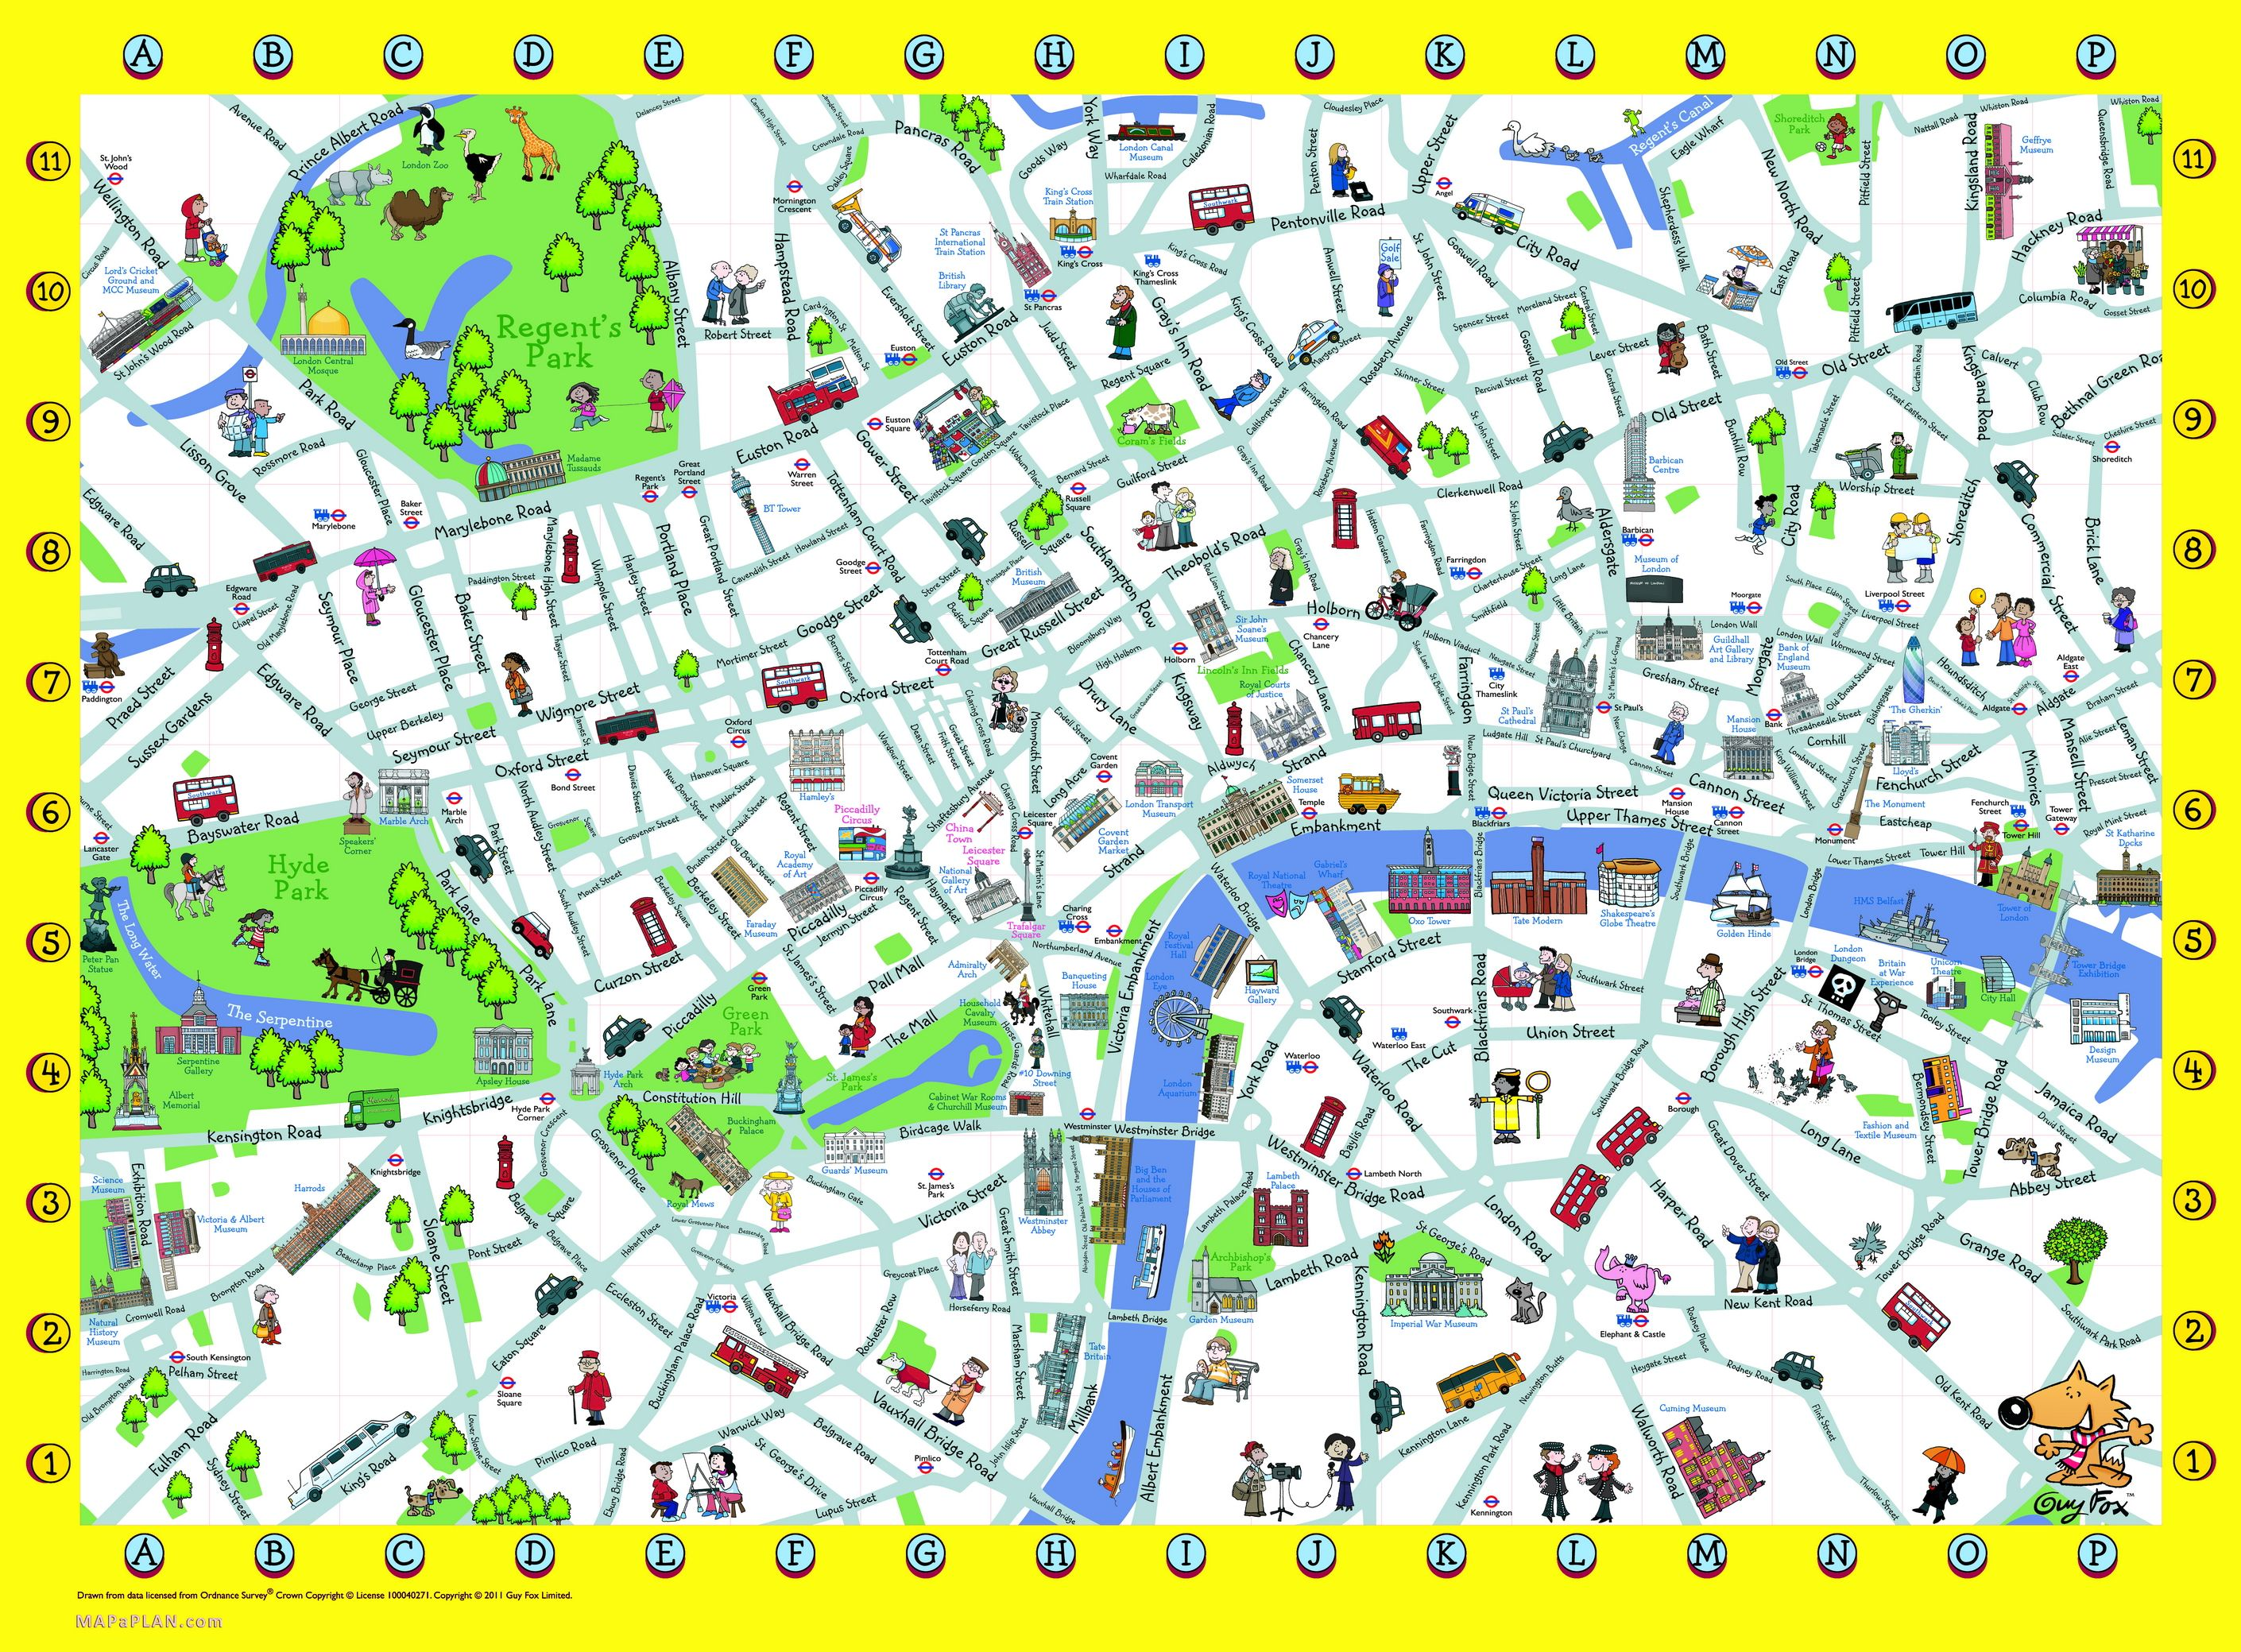 London Map Printable.London Detailed Landmark Map London Maps Top Tourist Attractions